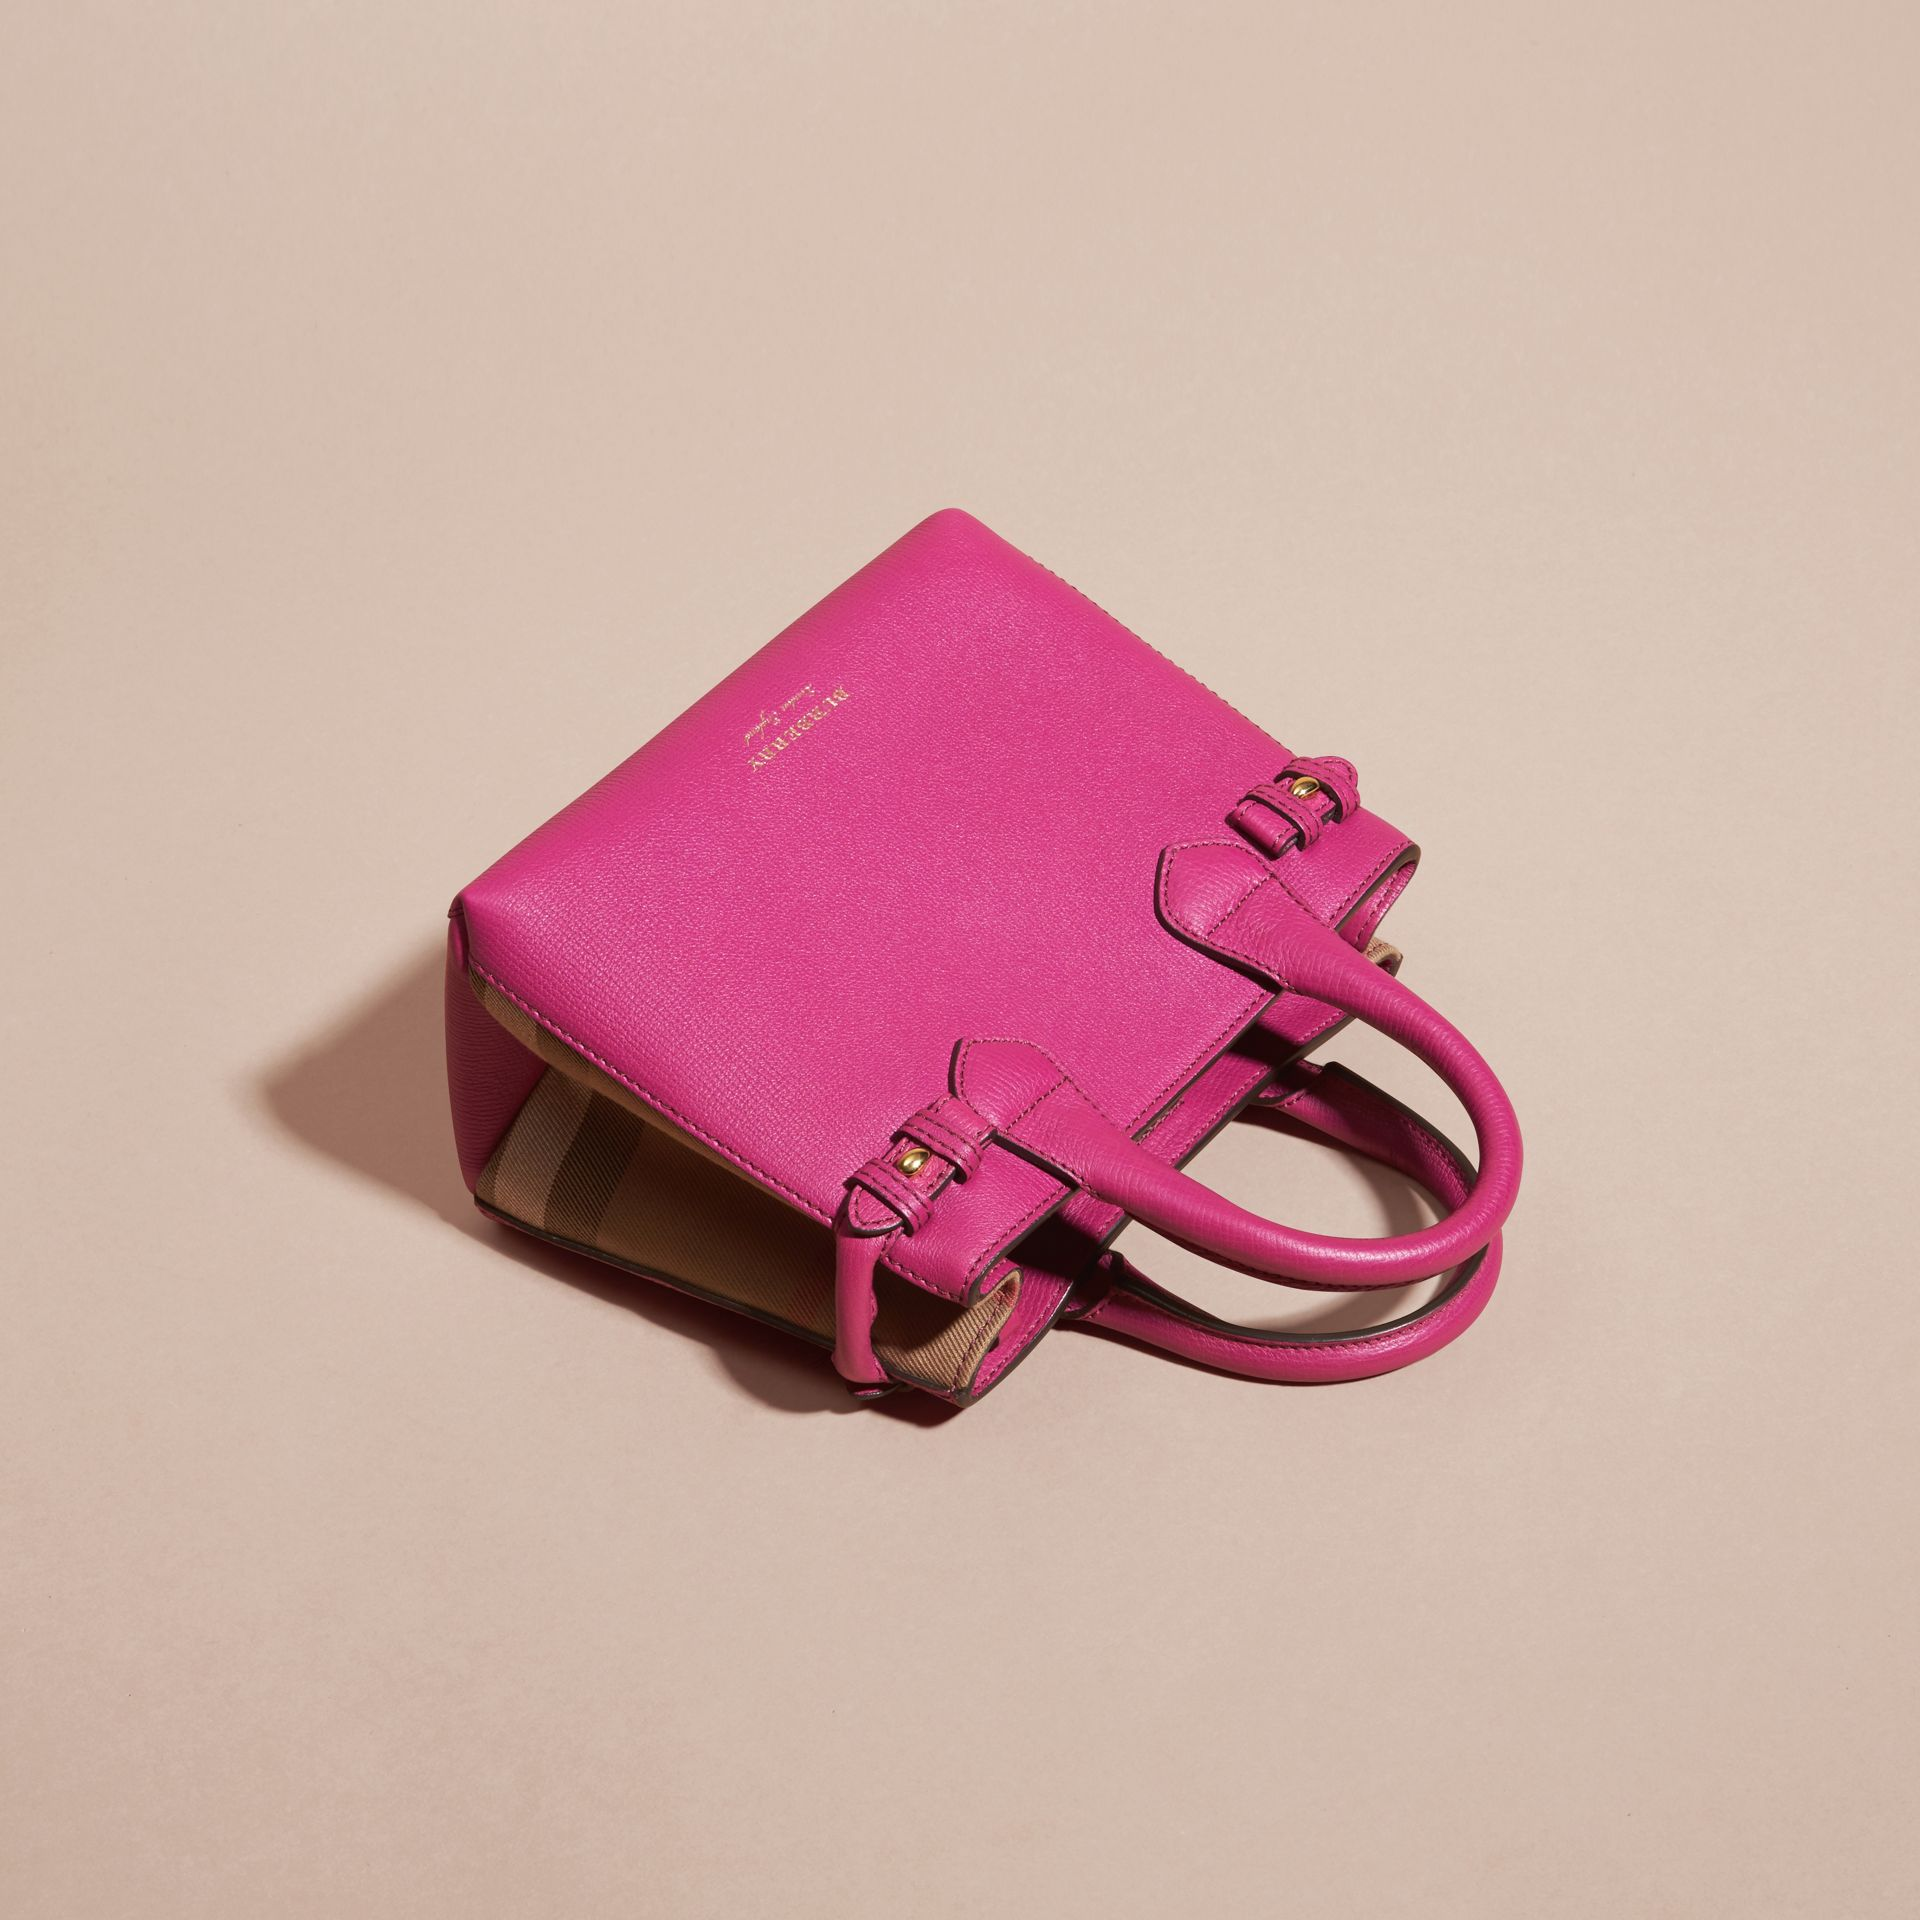 Fucsia brillante Borsa The Baby Banner in pelle con motivo House check Fucsia Brillante - immagine della galleria 7